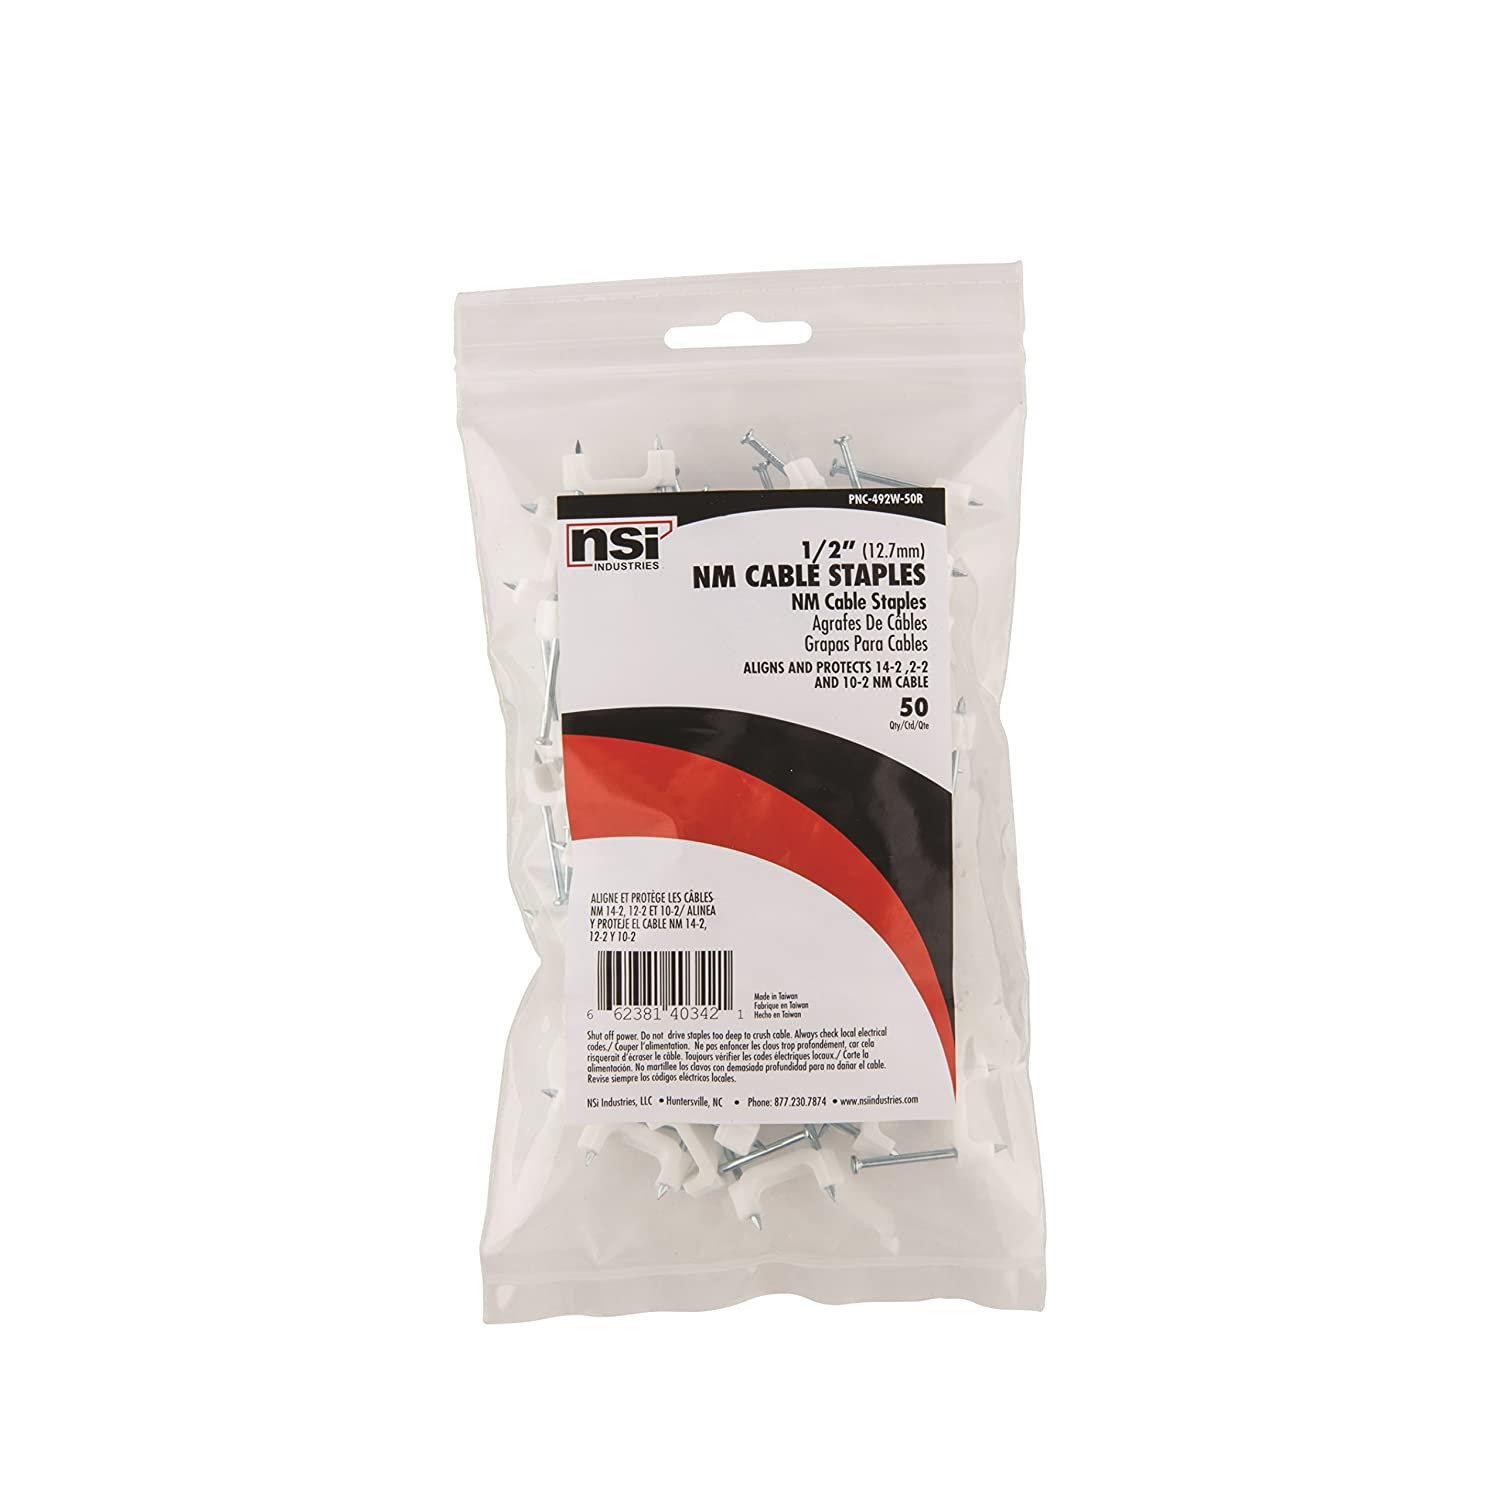 Nsi Industries Pnc 492w Nail On Plastic Staple For Romex Wiring Money Cable 0492 Width 0315 Height White Pack Of 100 Industrial Scientific